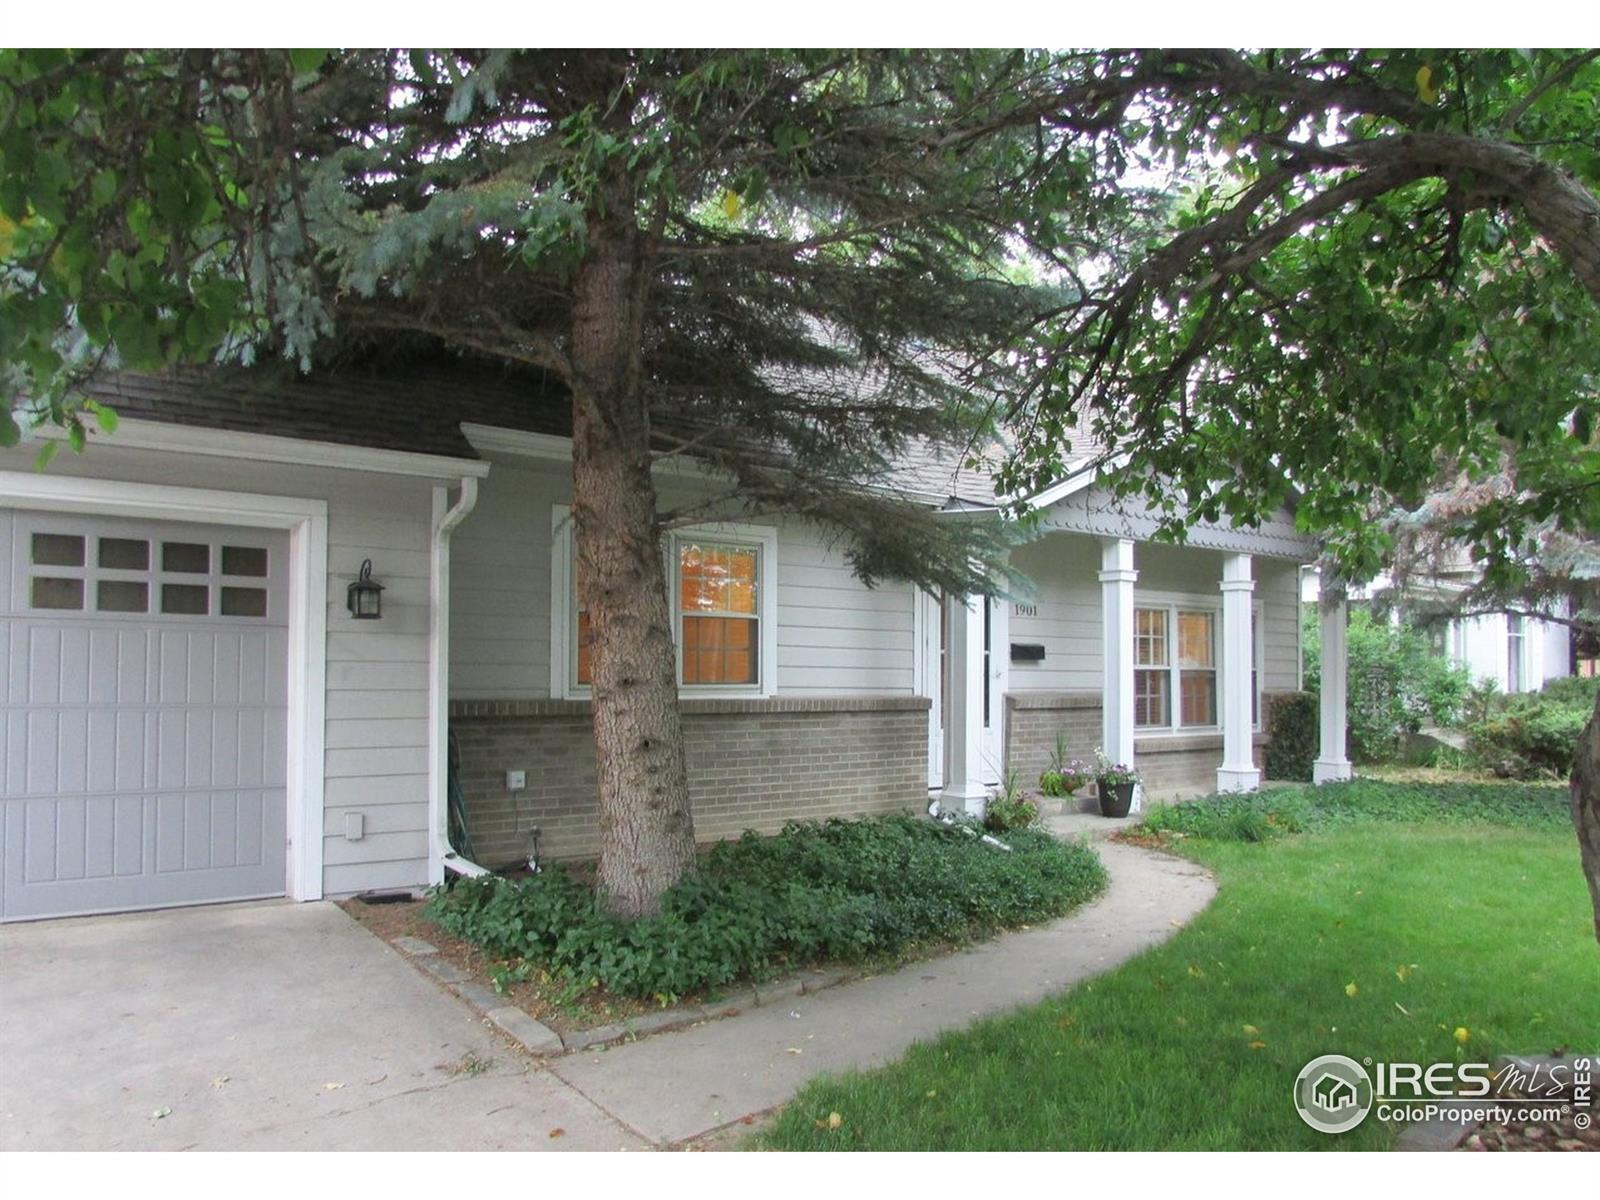 1901 W Mulberry Street, Fort Collins, CO 80521 - #: IR951659